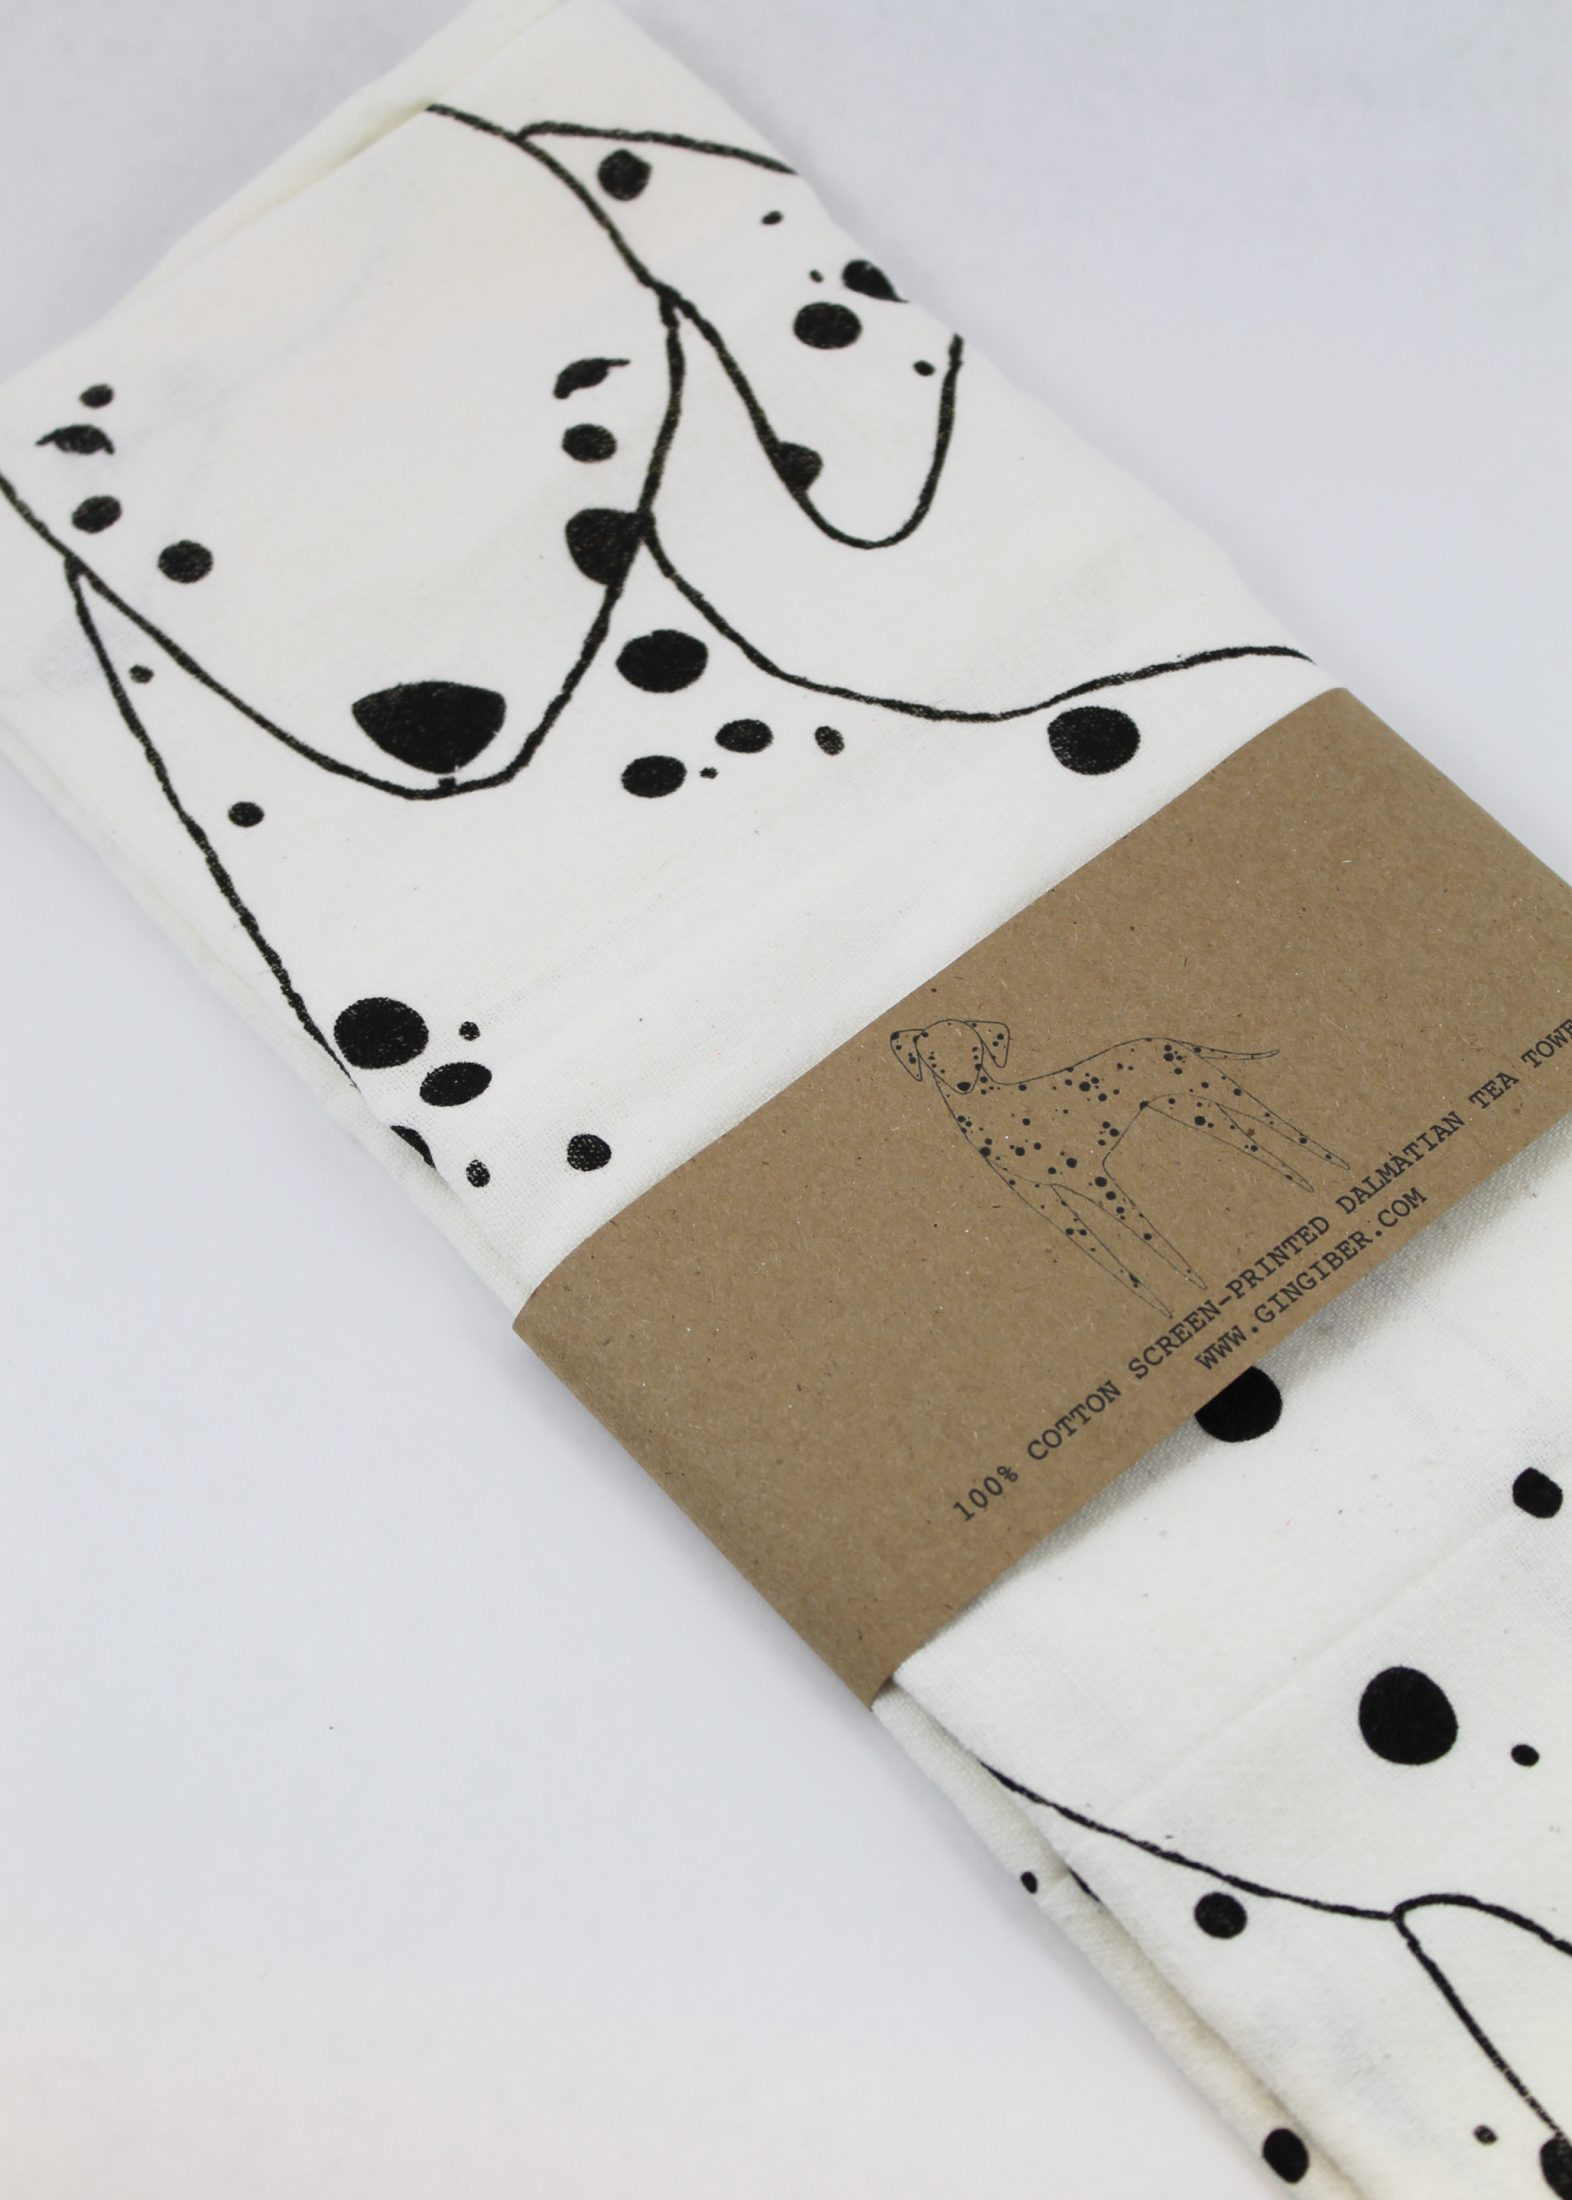 dalmatian printed tea towel